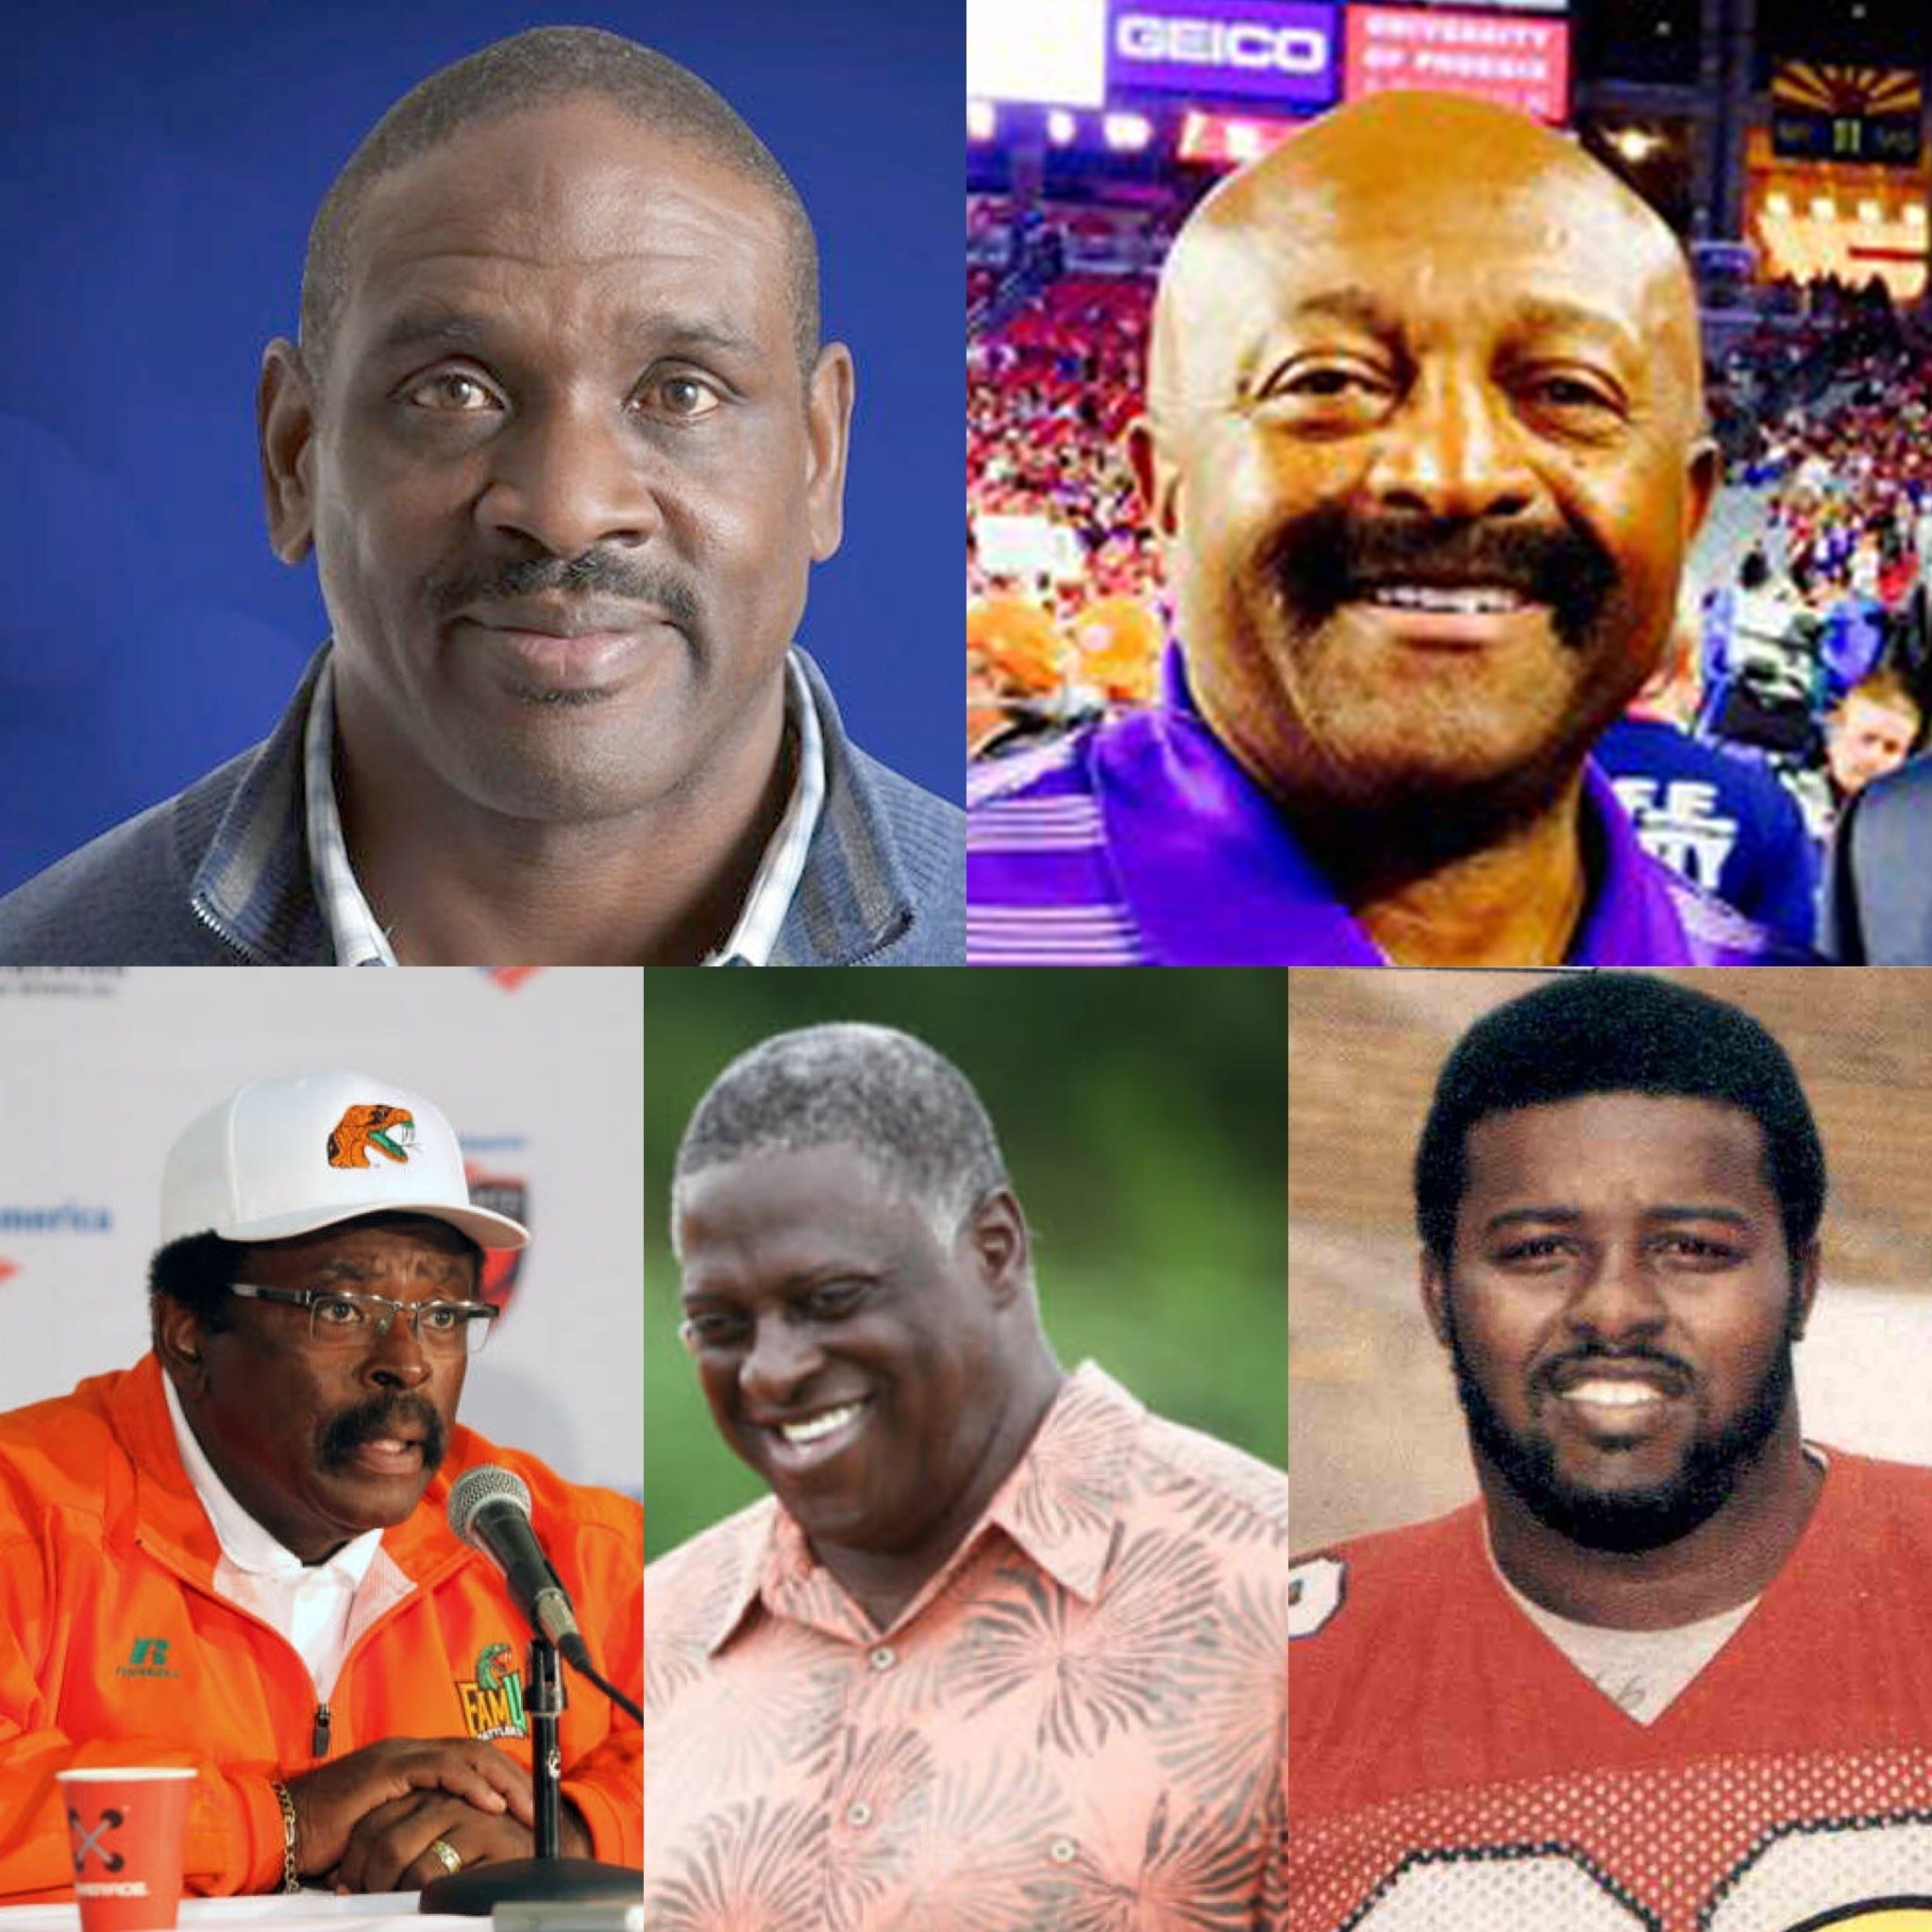 FAMU leads with five finalists for enshrinement in the Black College Football HOF